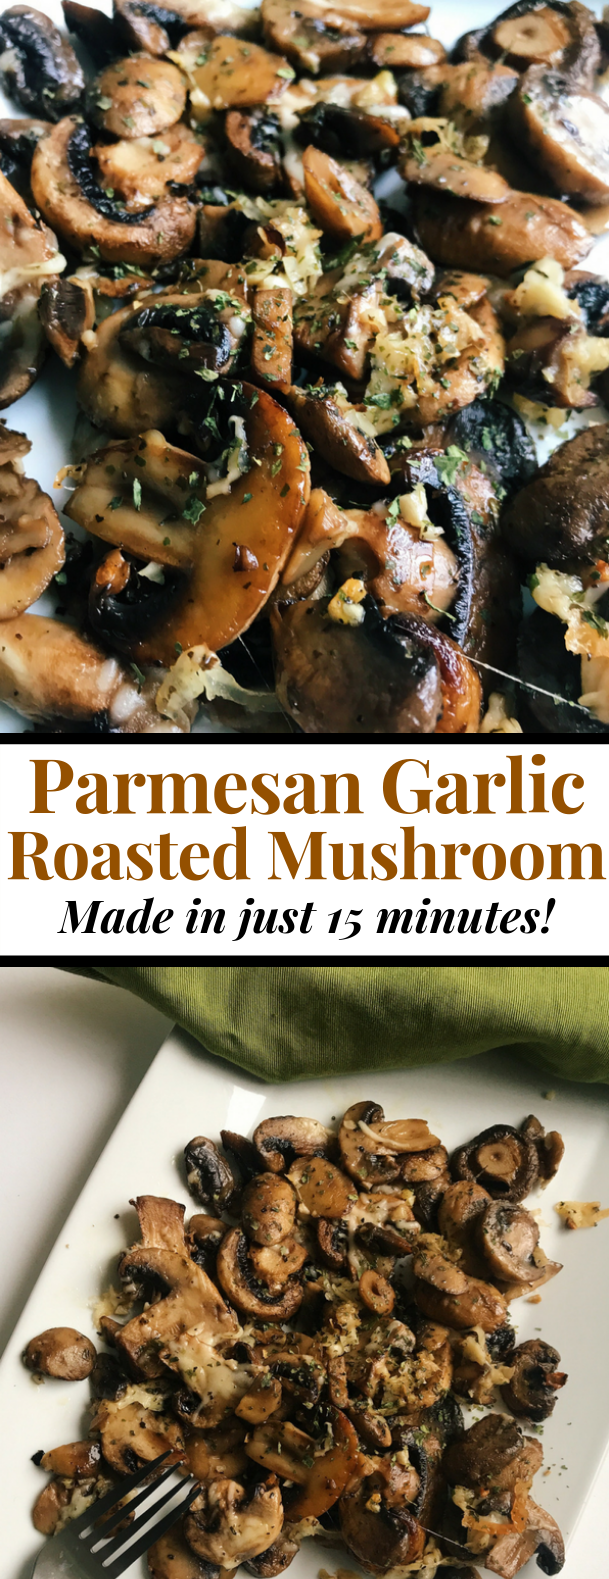 Parmesan Garlic Roasted Mushrooms #vegetarian #healthyrecipe